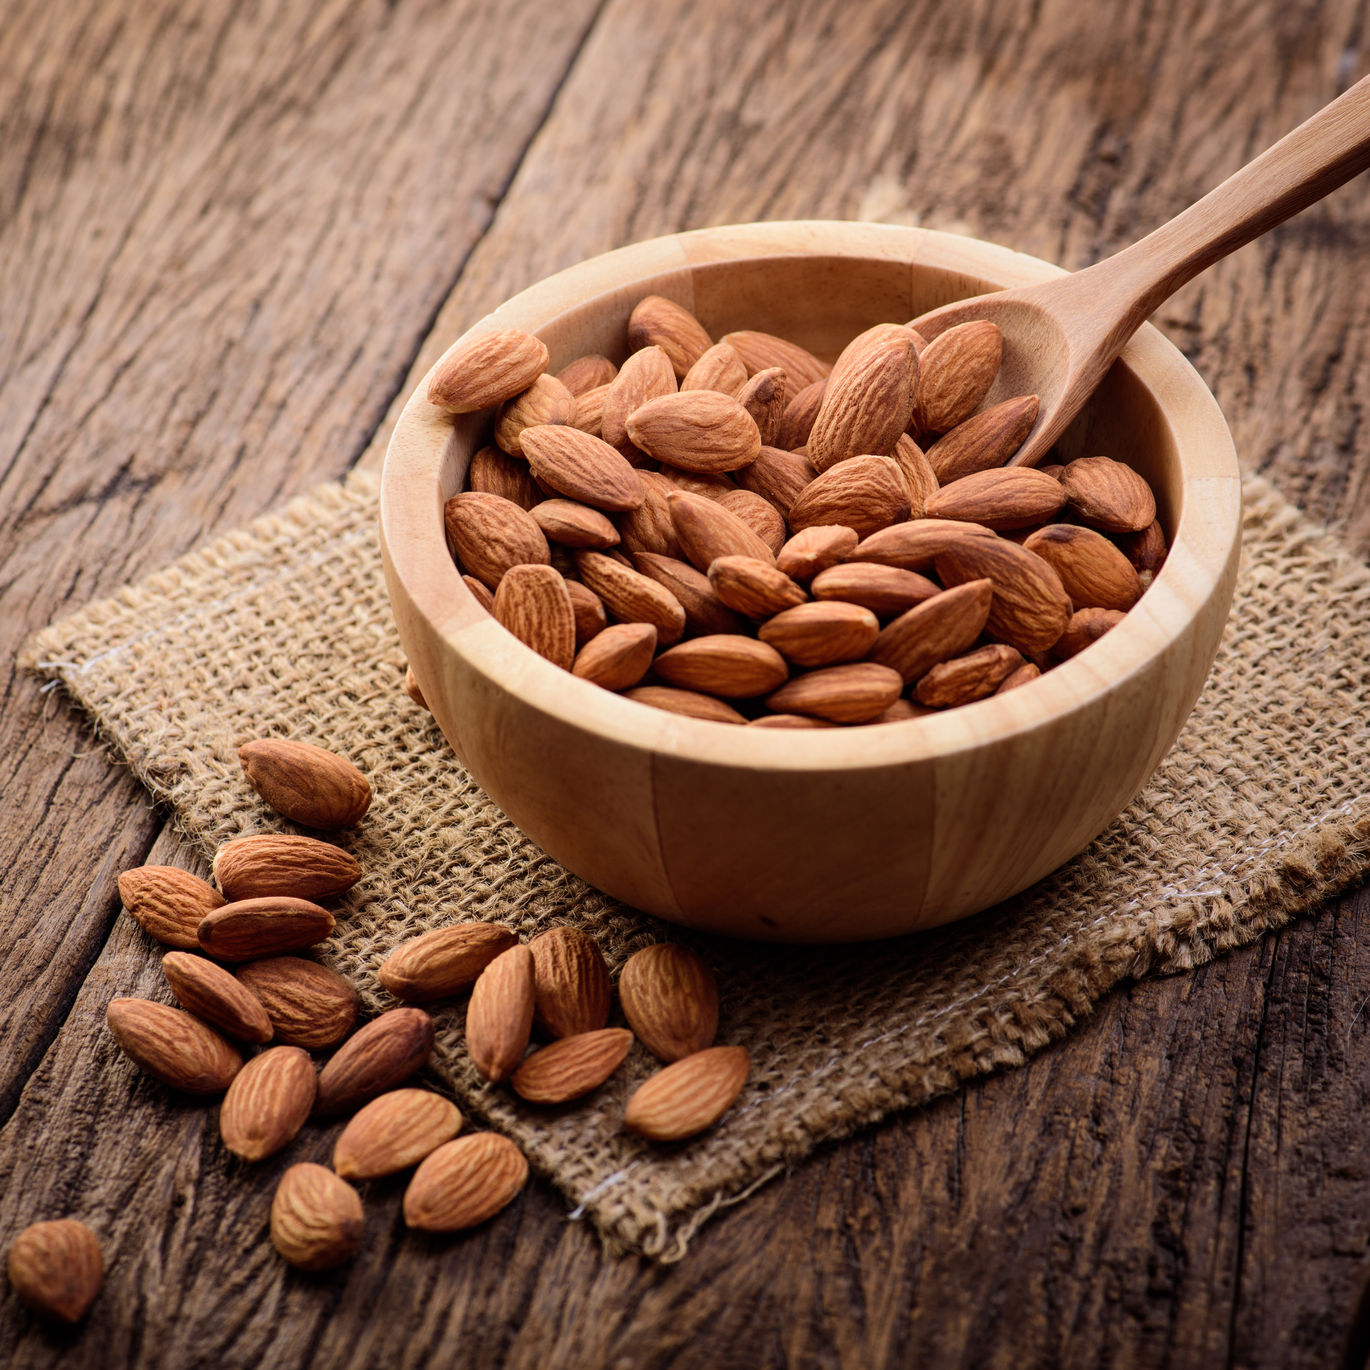 Foods to Boost Fertility